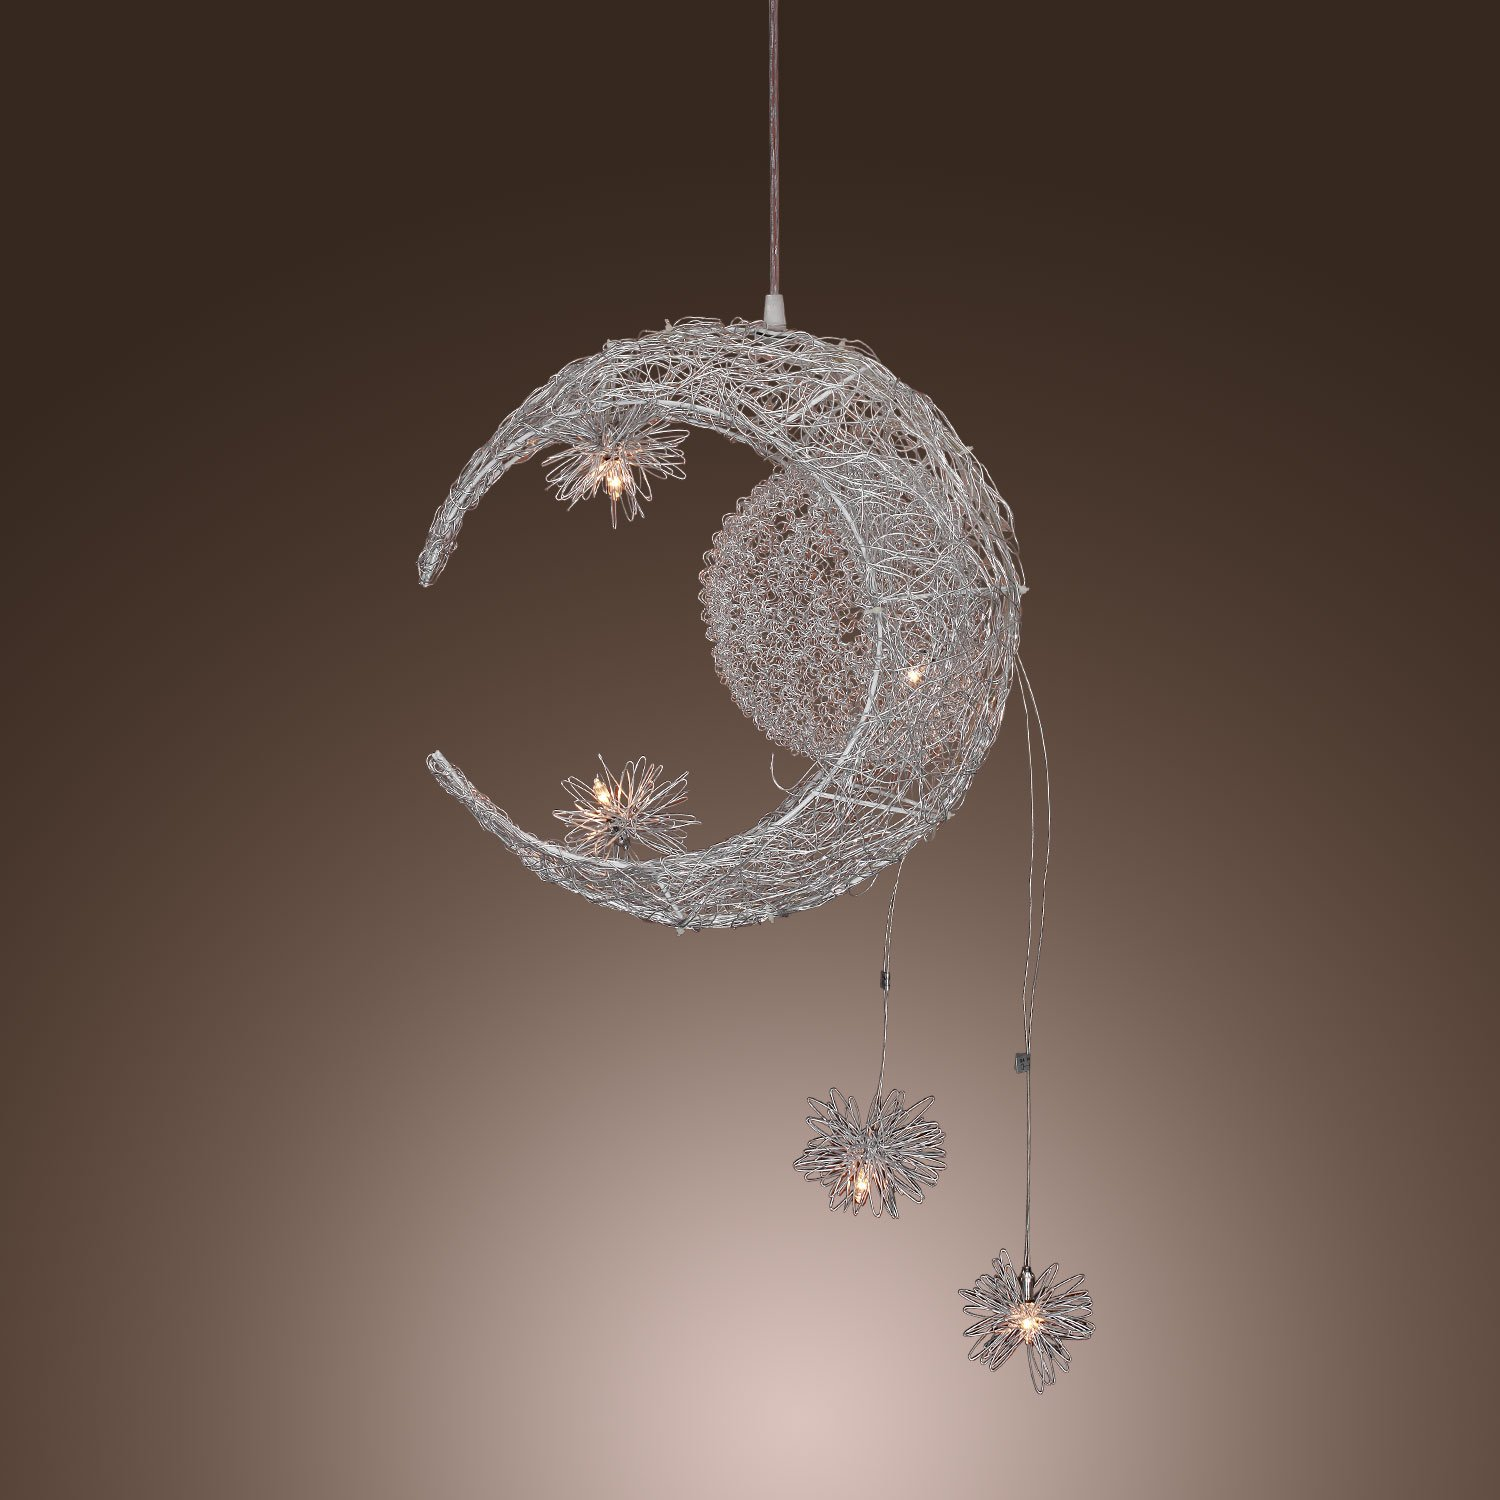 Lightinthebox moon star featured pendant light with 5 lights lightinthebox moon star featured pendant light with 5 lights globe mini style pendant lights home ceiling light fixture for dining room living room mozeypictures Gallery